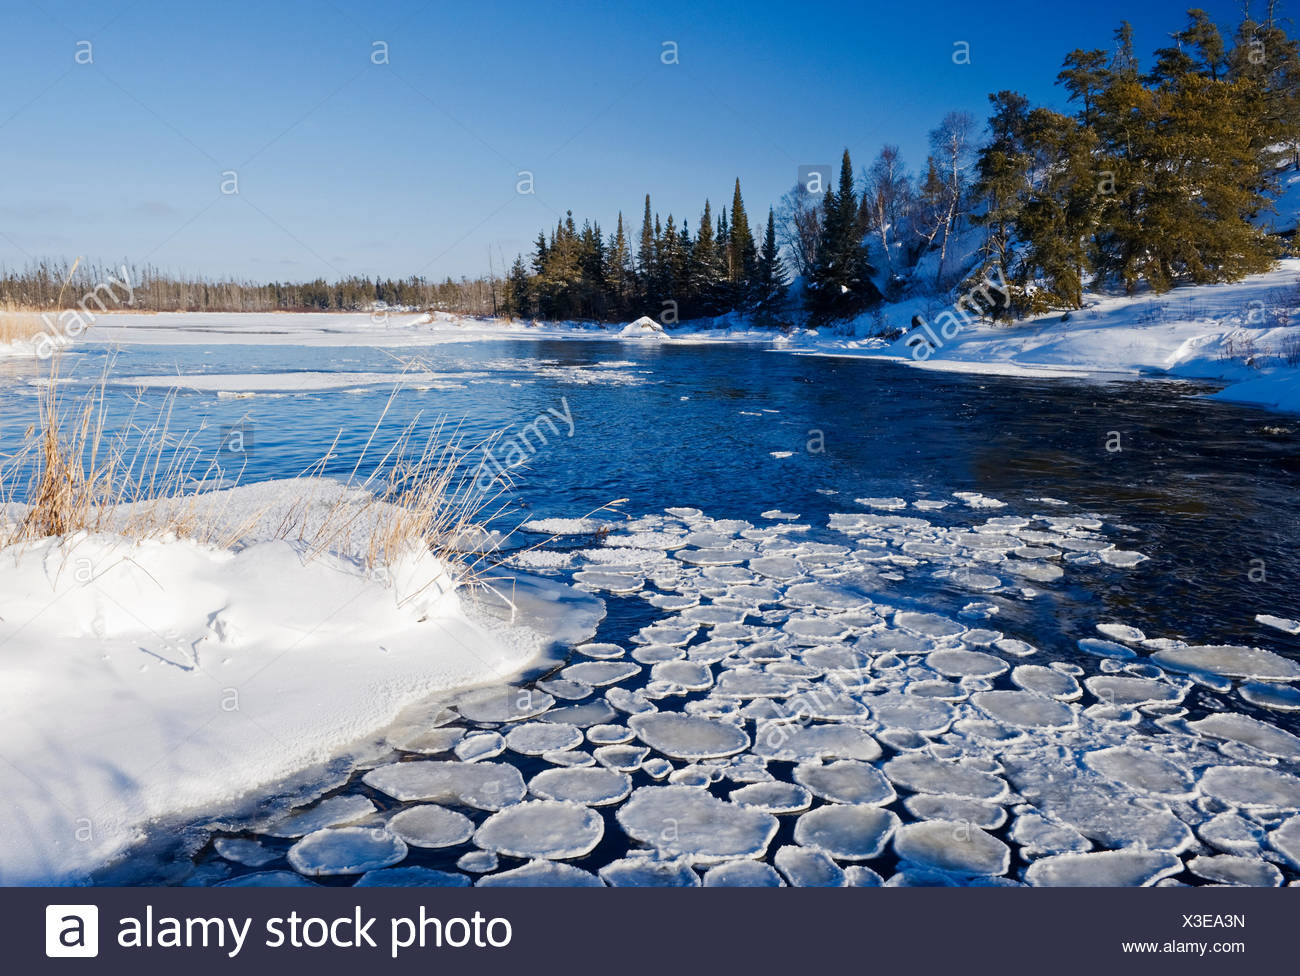 pan ice along the Whiteshell River, Whiteshell Provincial Park, Manitoba, Canada - Stock Image